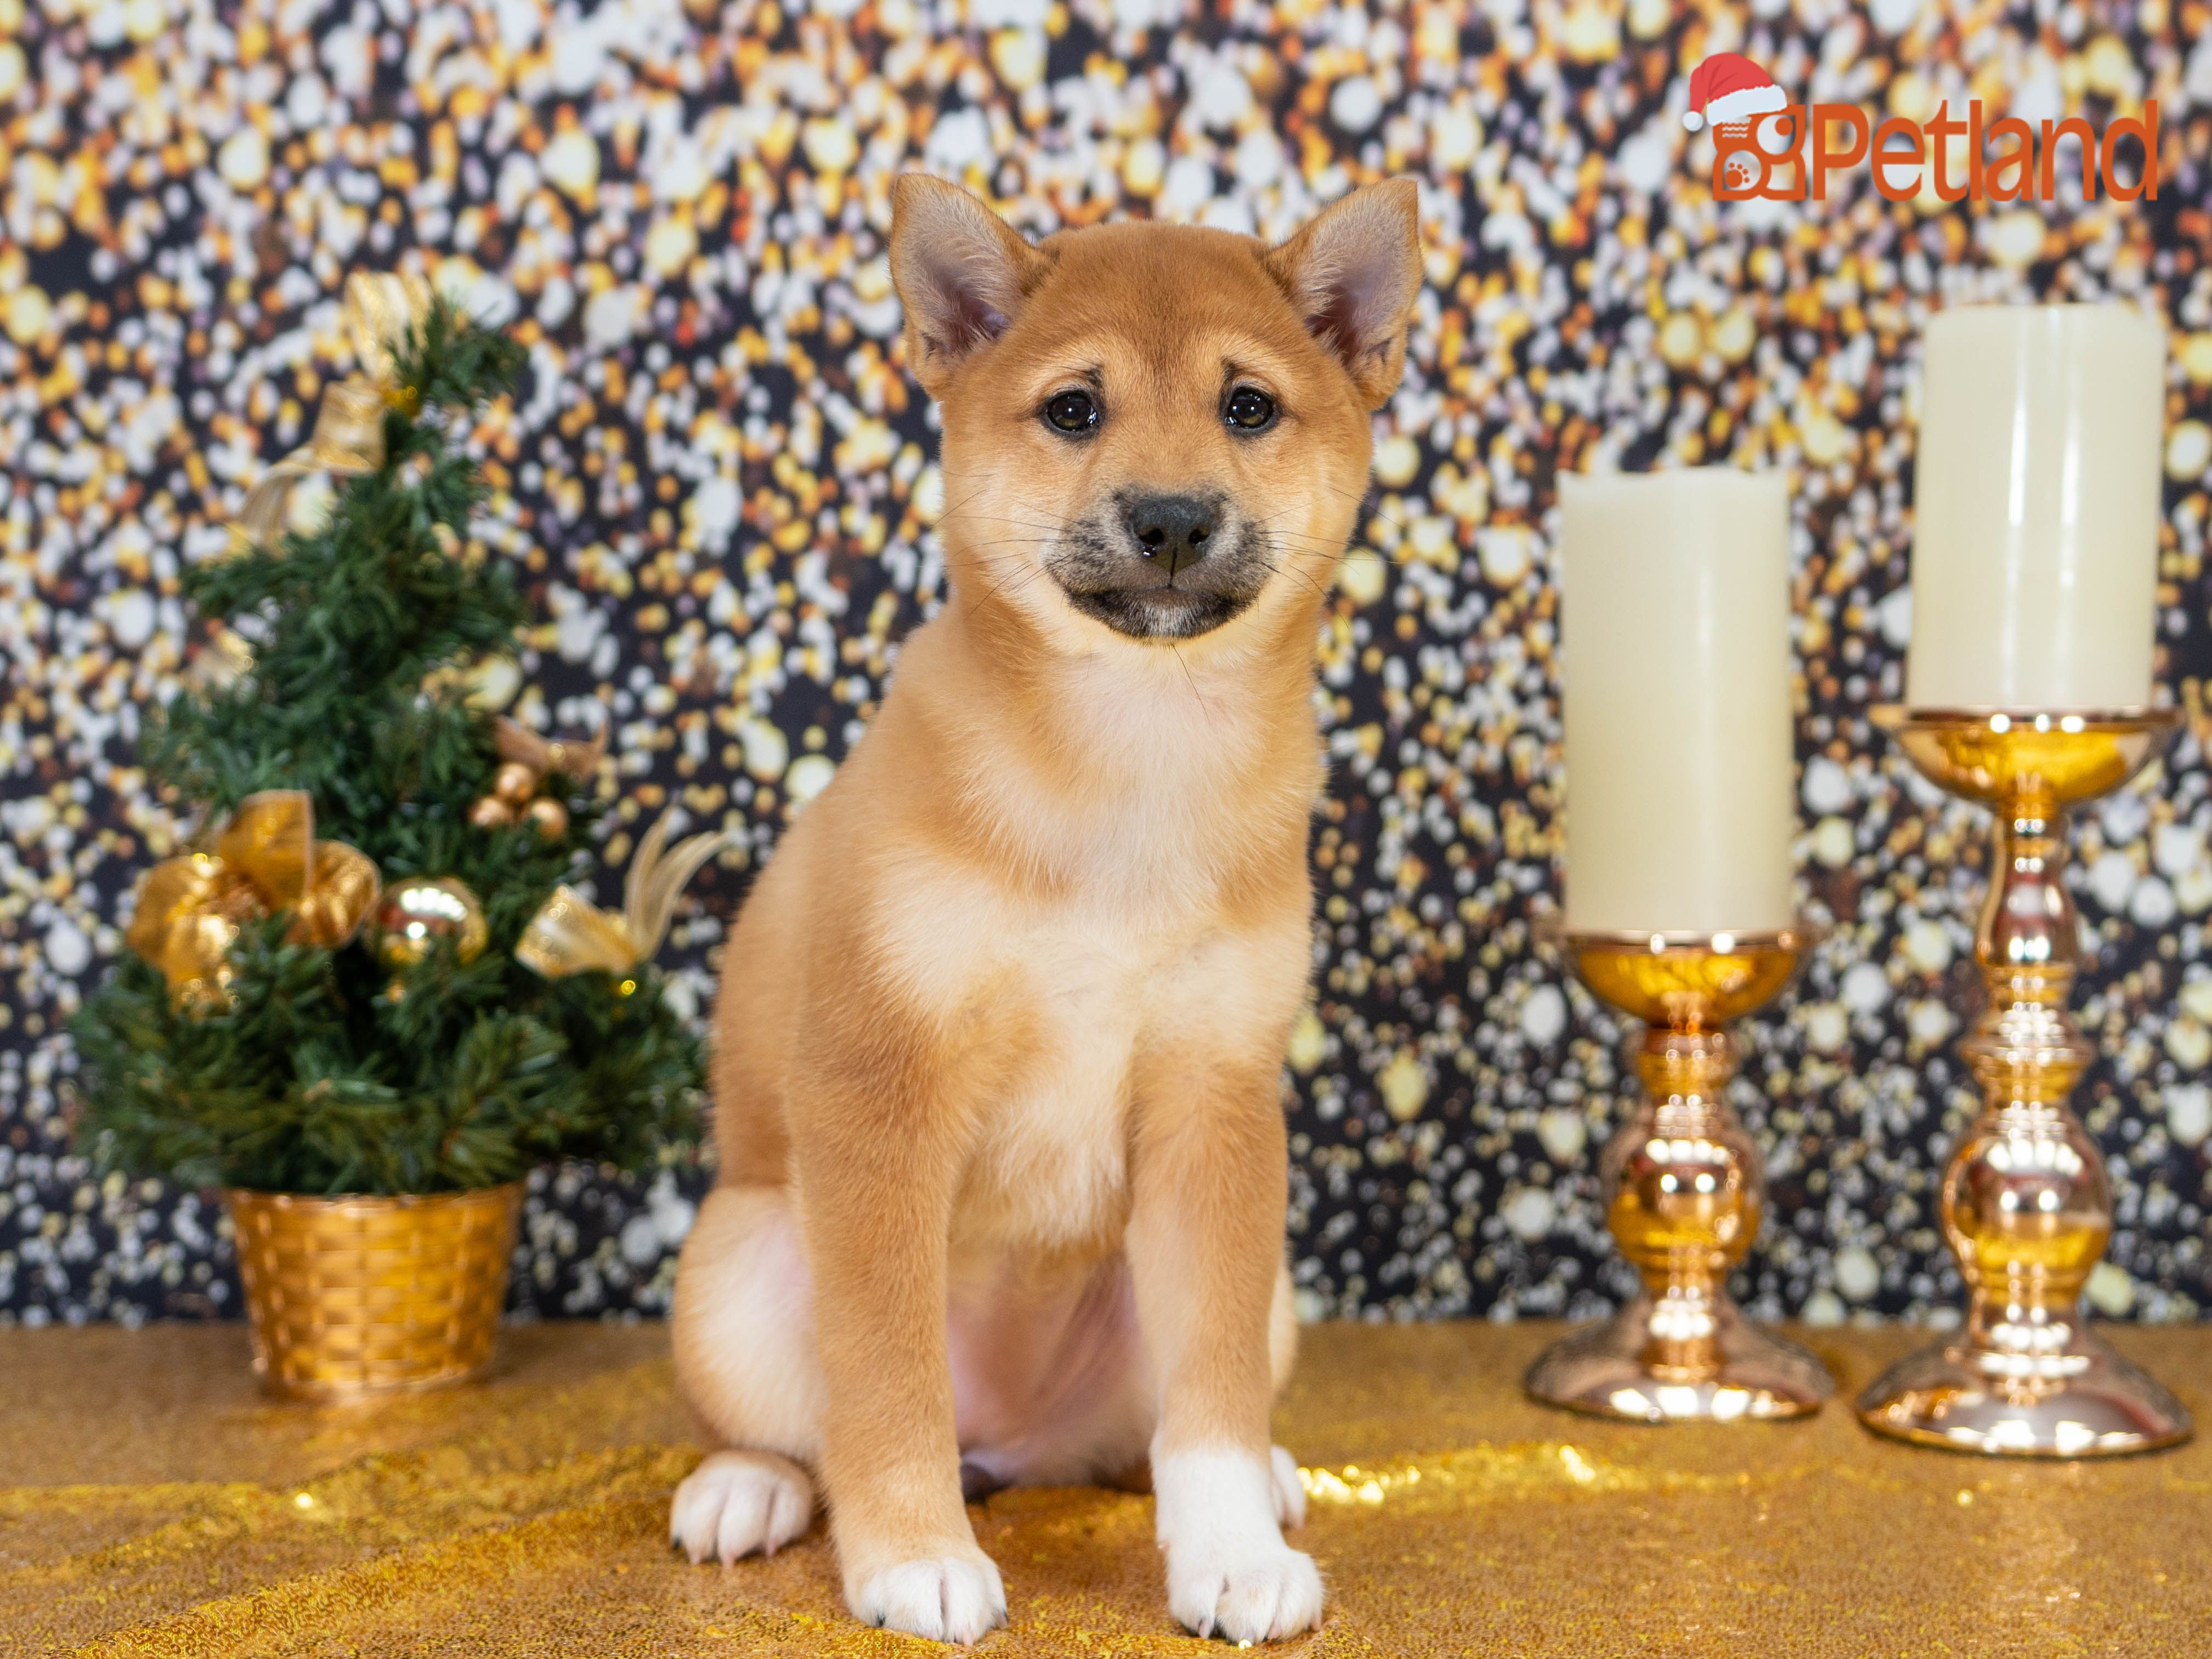 Puppies For Sale Shiba Inu Puppies Puppies For Sale